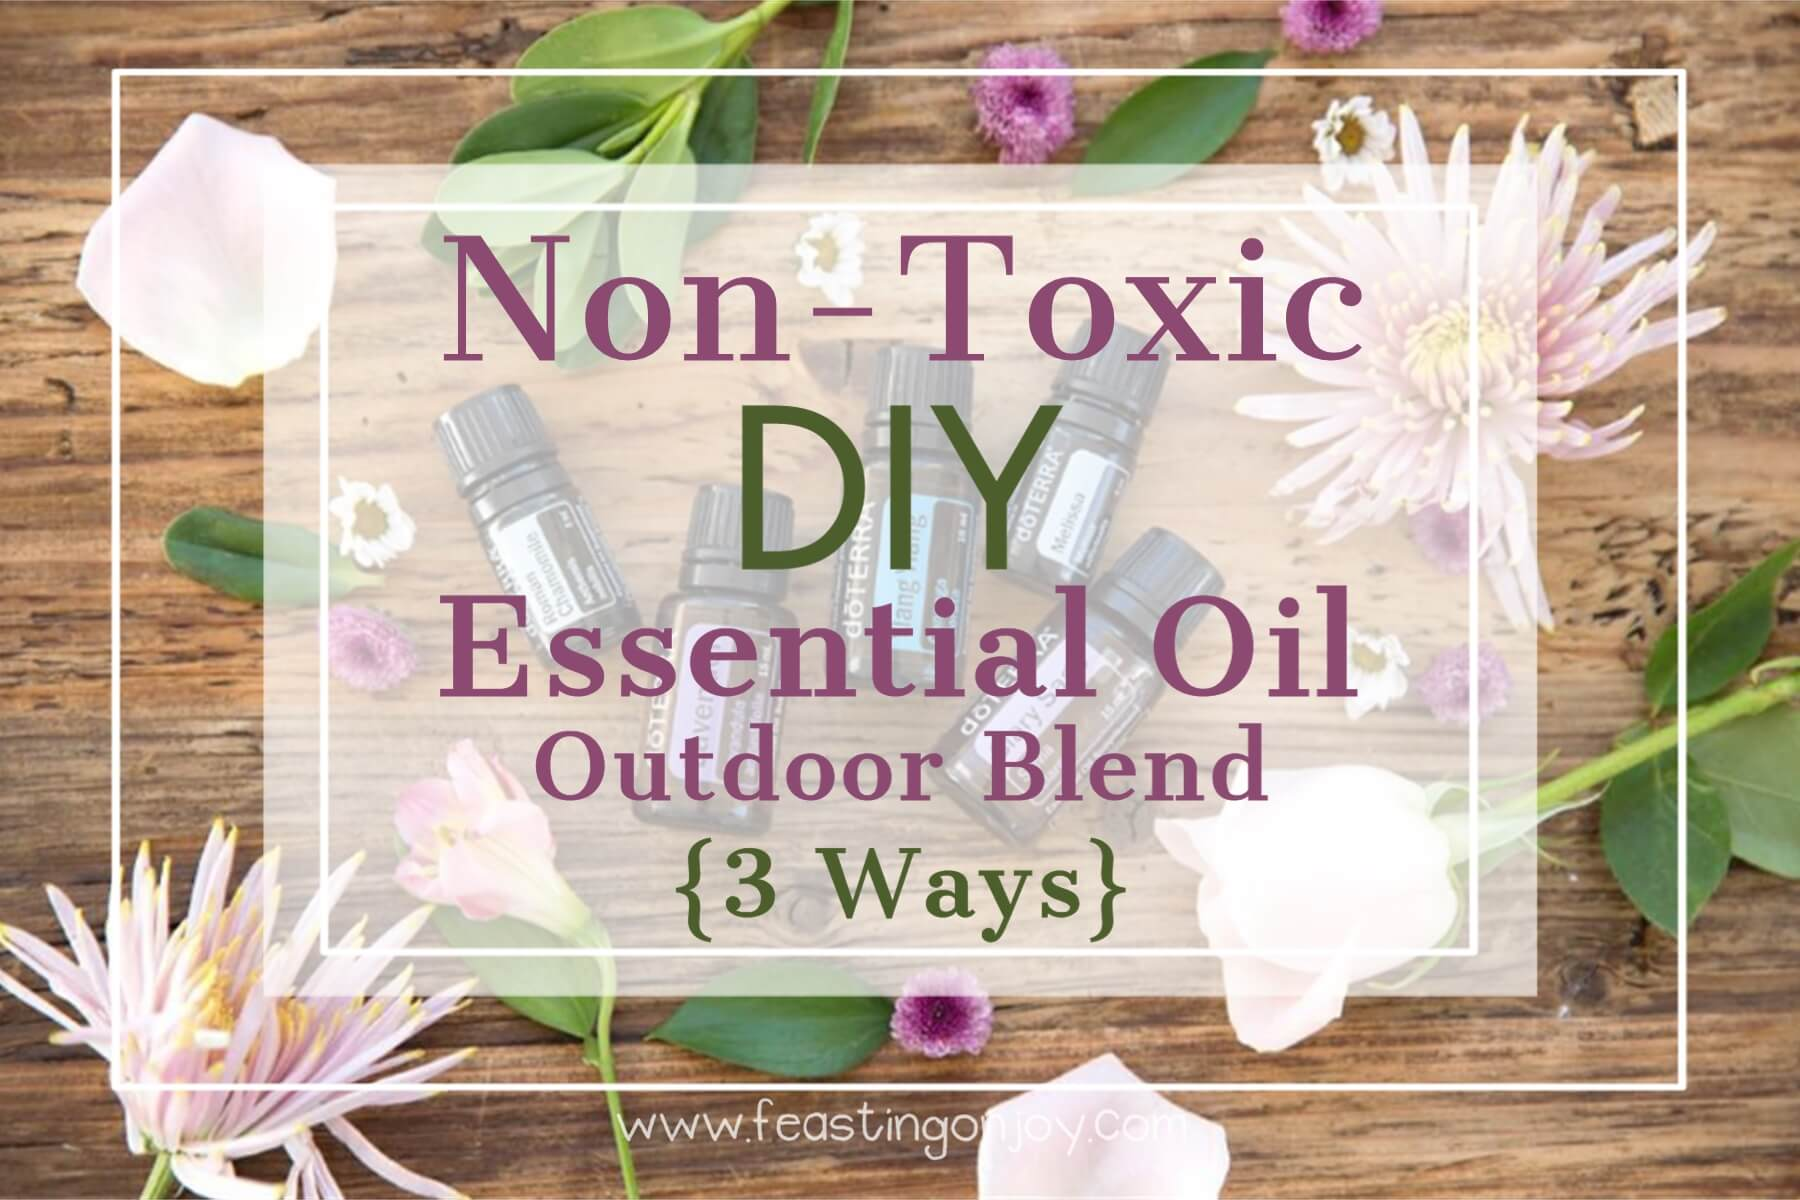 Non Toxic Diy Essential Oil Outdoor Blend 3 Ways